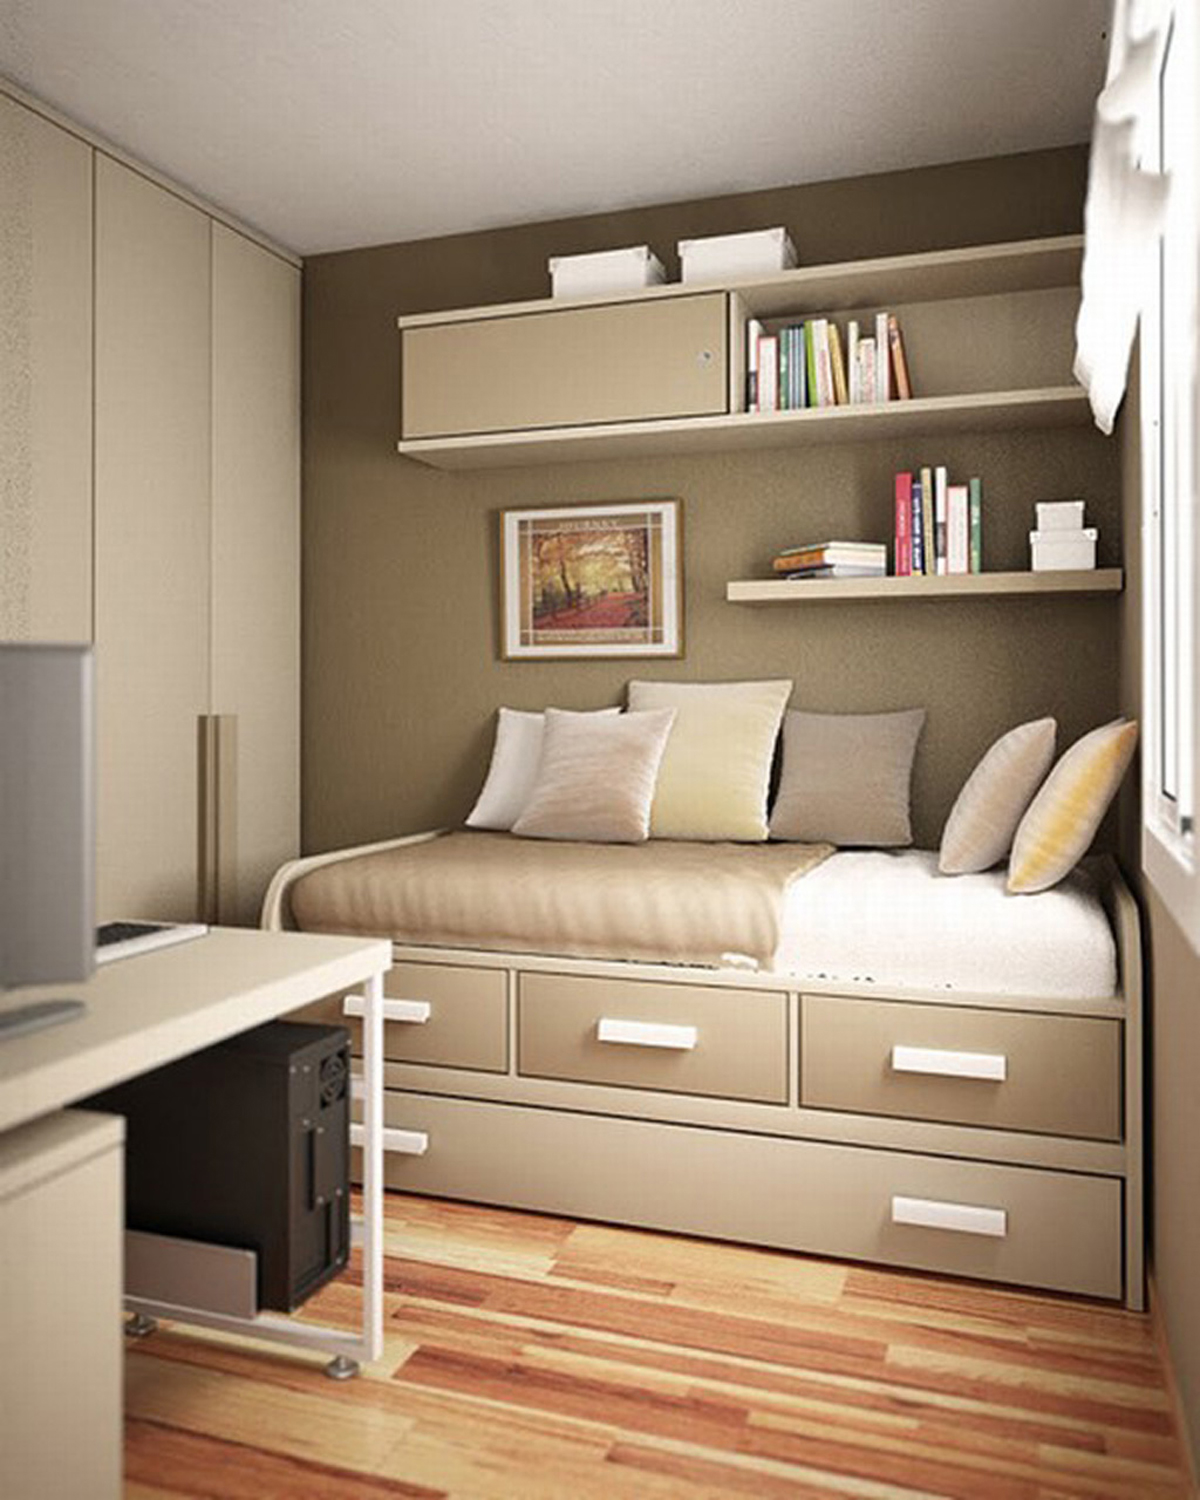 Remodeling Ideas For Small Bedrooms